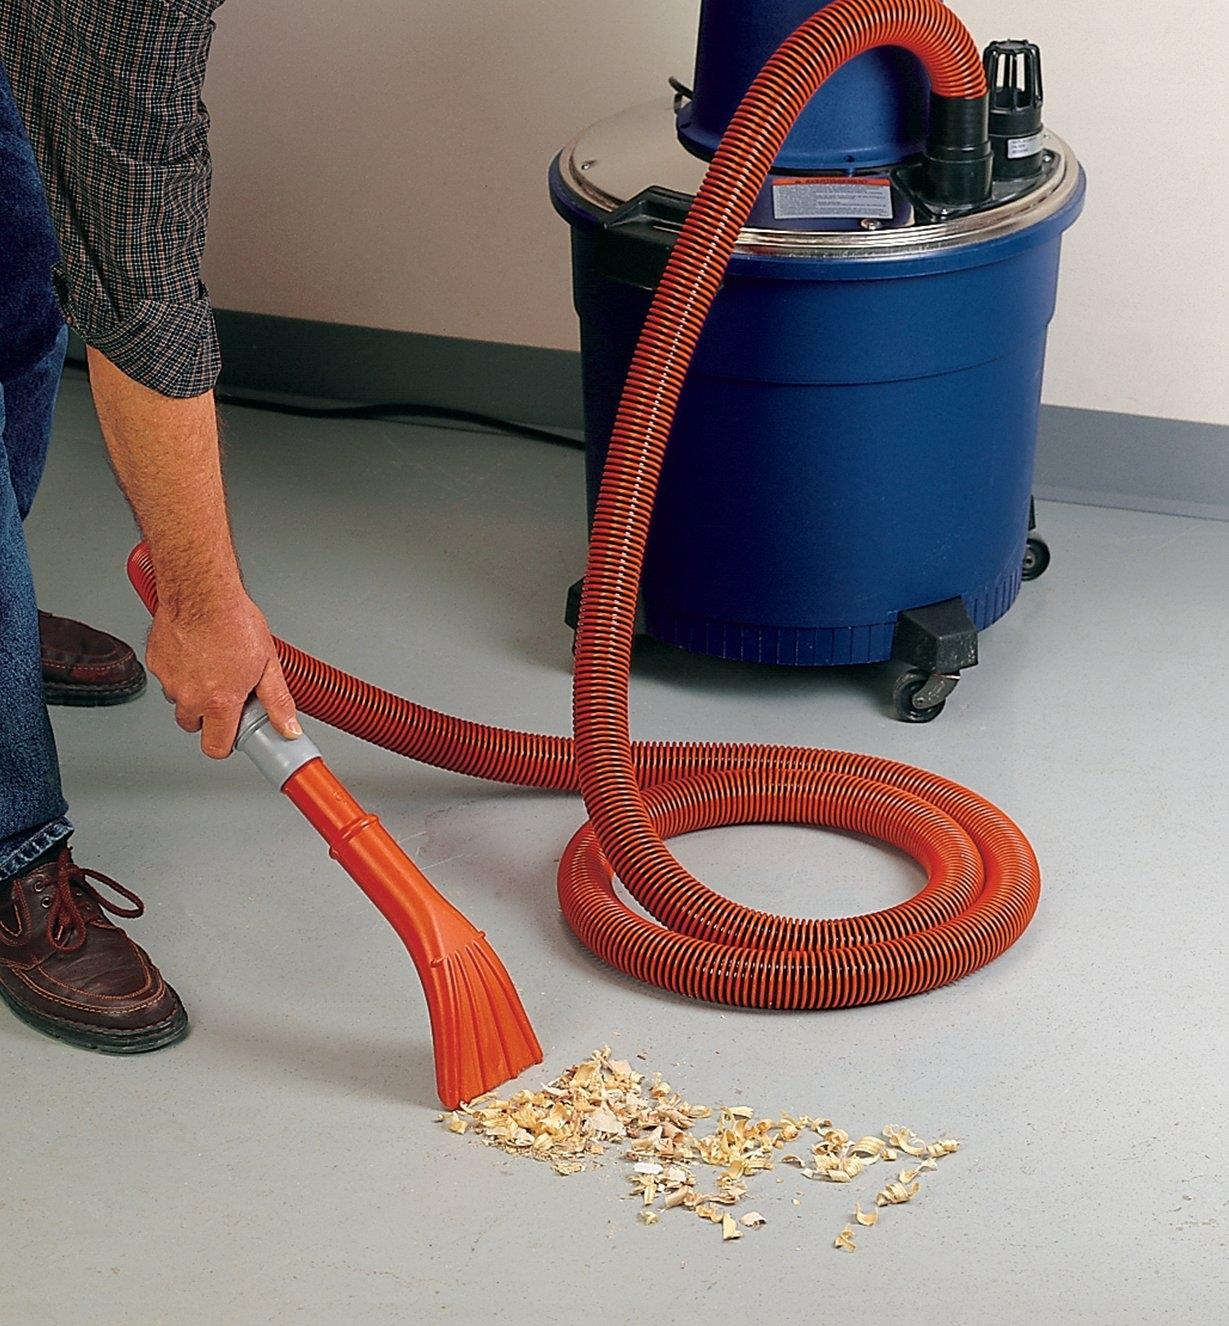 Vacuuming wood chips using the claw tool on the wet/dry vacuum accessory kit